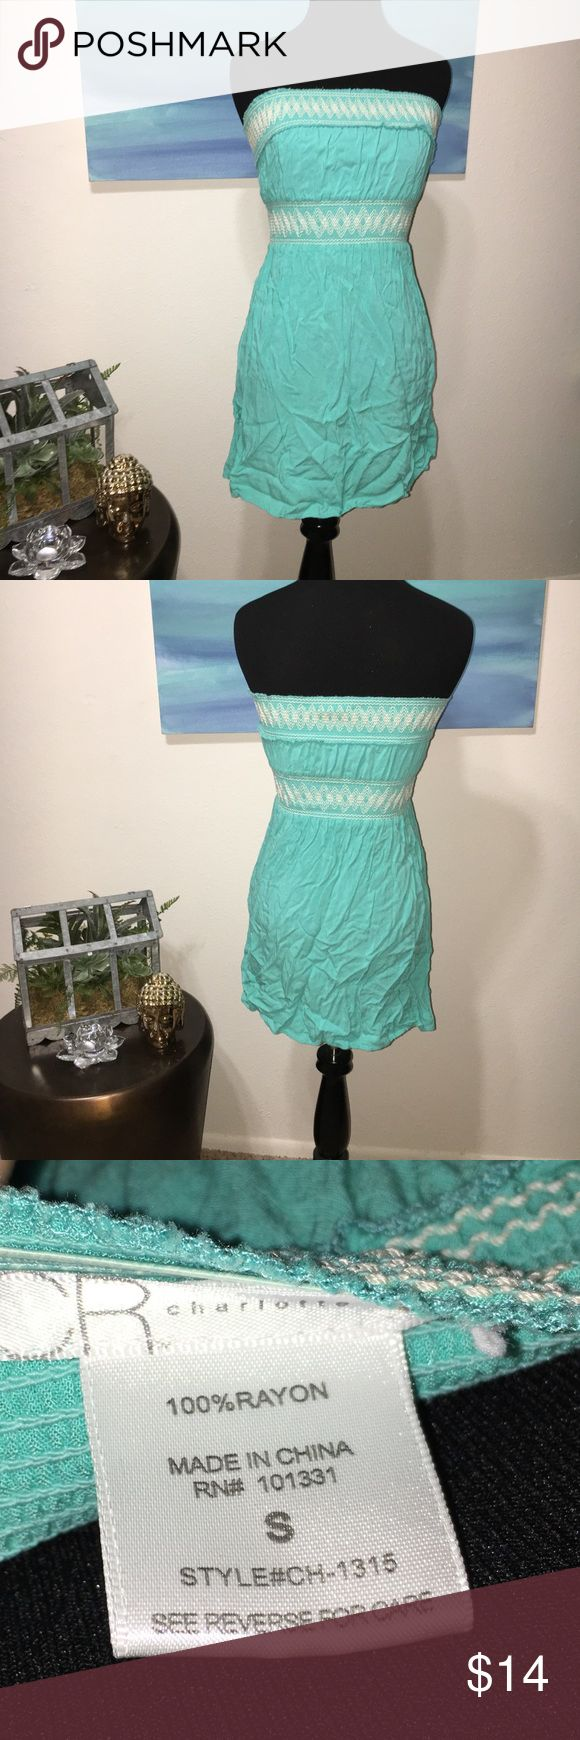 """Gorgeous Aqua Charlotte Russe Strapless Dress Has an empire waistband. Aqua with white accent detailed stitching. Both the top band and the waistband stretch. Approx. 25"""" long. Has an amazing quality feel for being from Charlotte Russe. No rips or stains comes from a smoke free home. Charlotte Russe Dresses Strapless"""